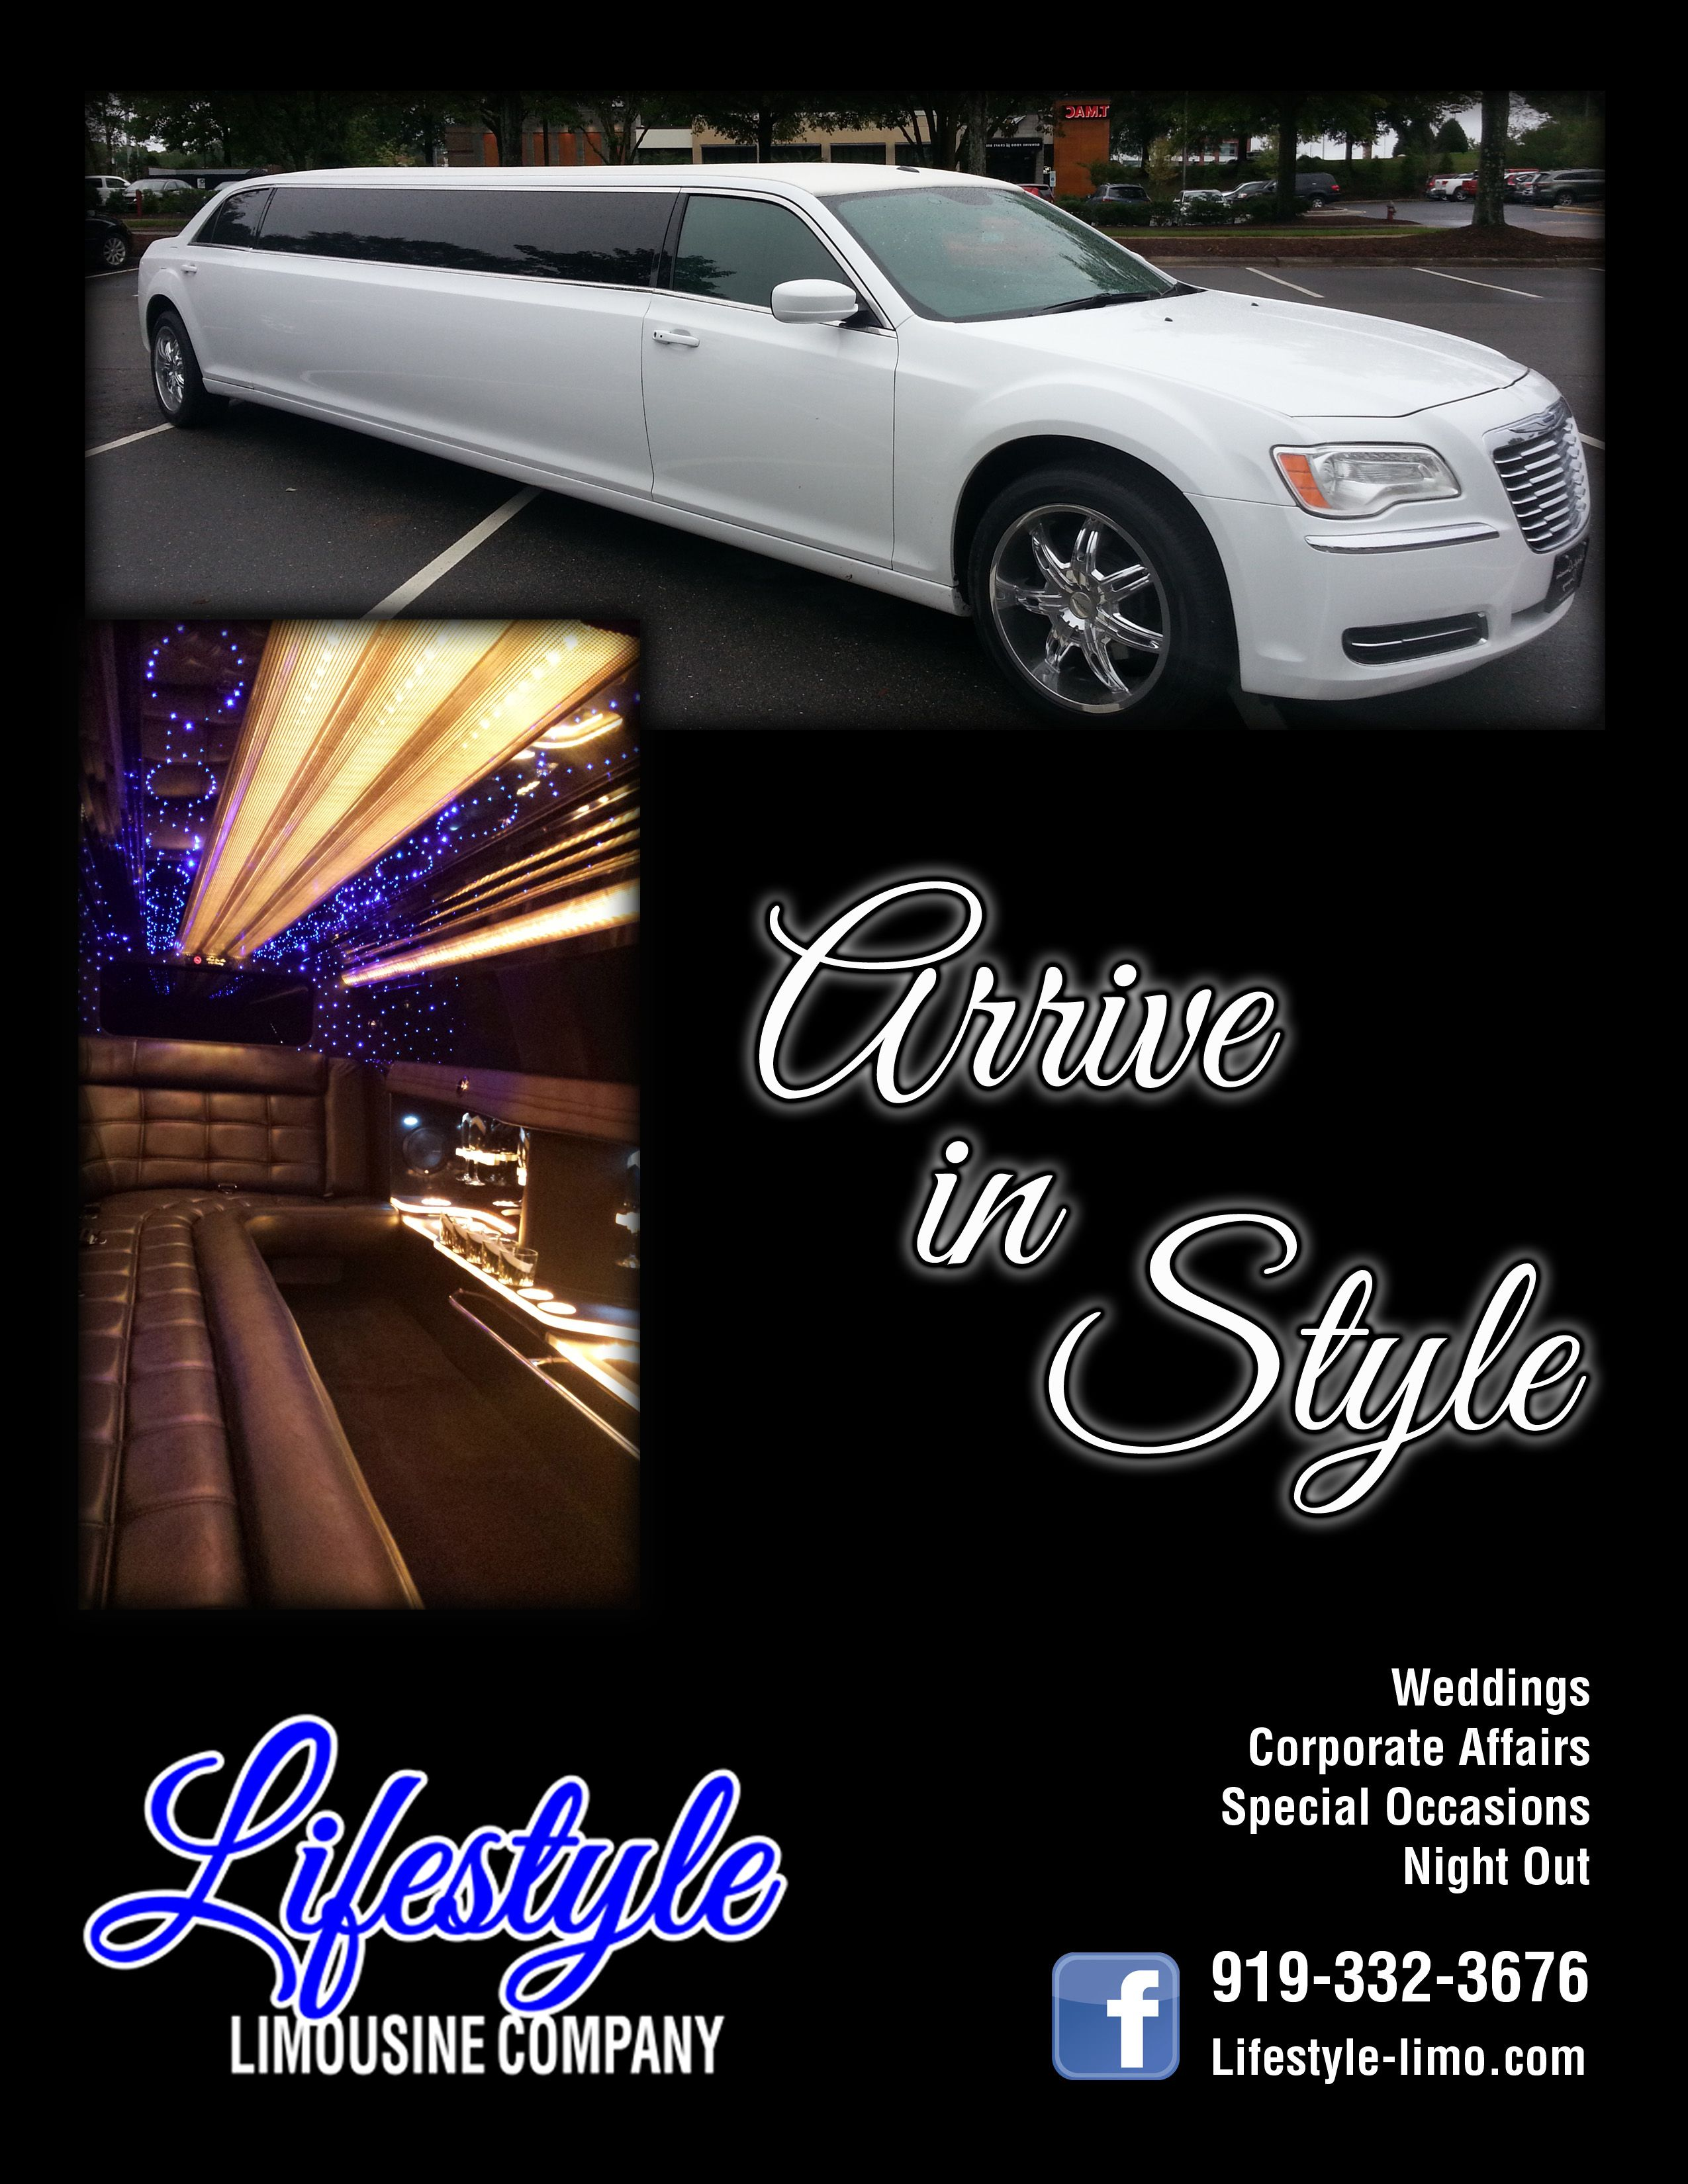 Check Out Our Brand New Chrysler 300 Stretch Limousine She Is A Really Beauty Now Booking Weddings For 2016 Limousine Chic Wedding Chrysler 300